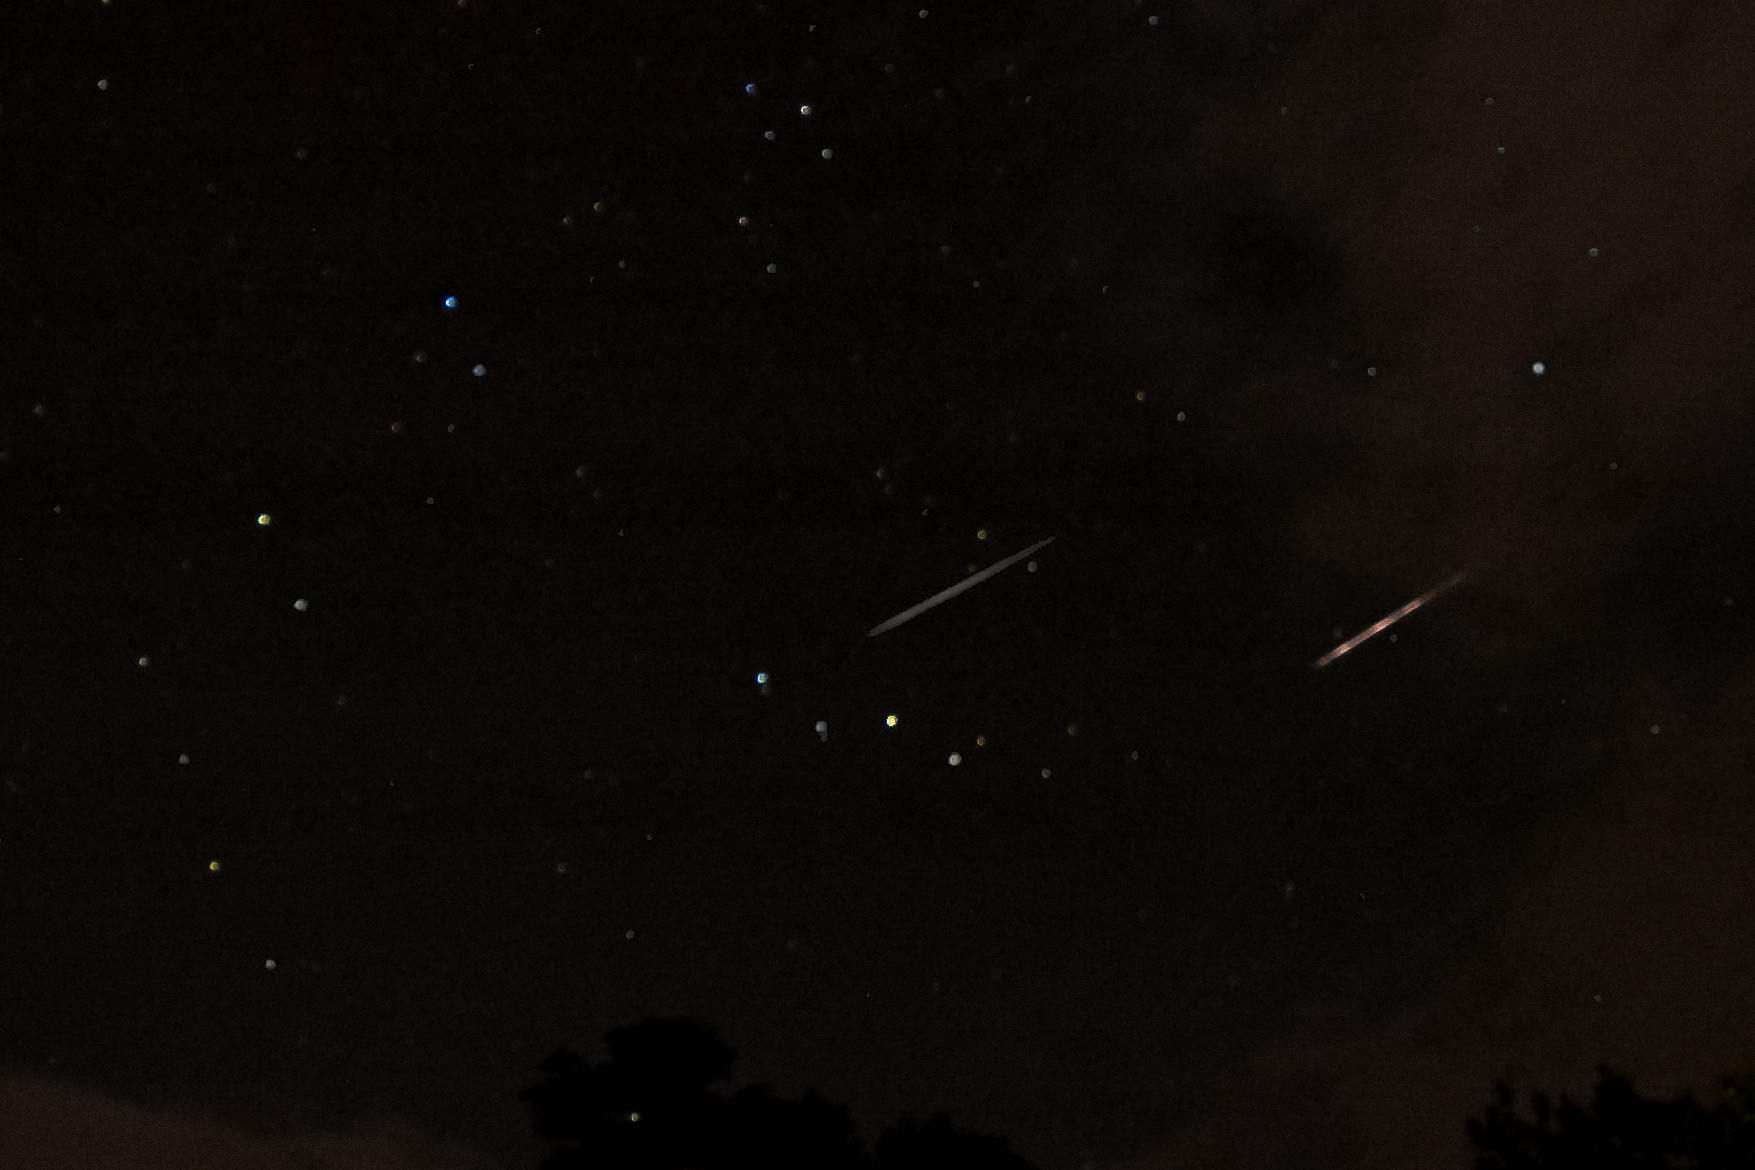 2012 Perseid Meteor Shower: Douglas Keck